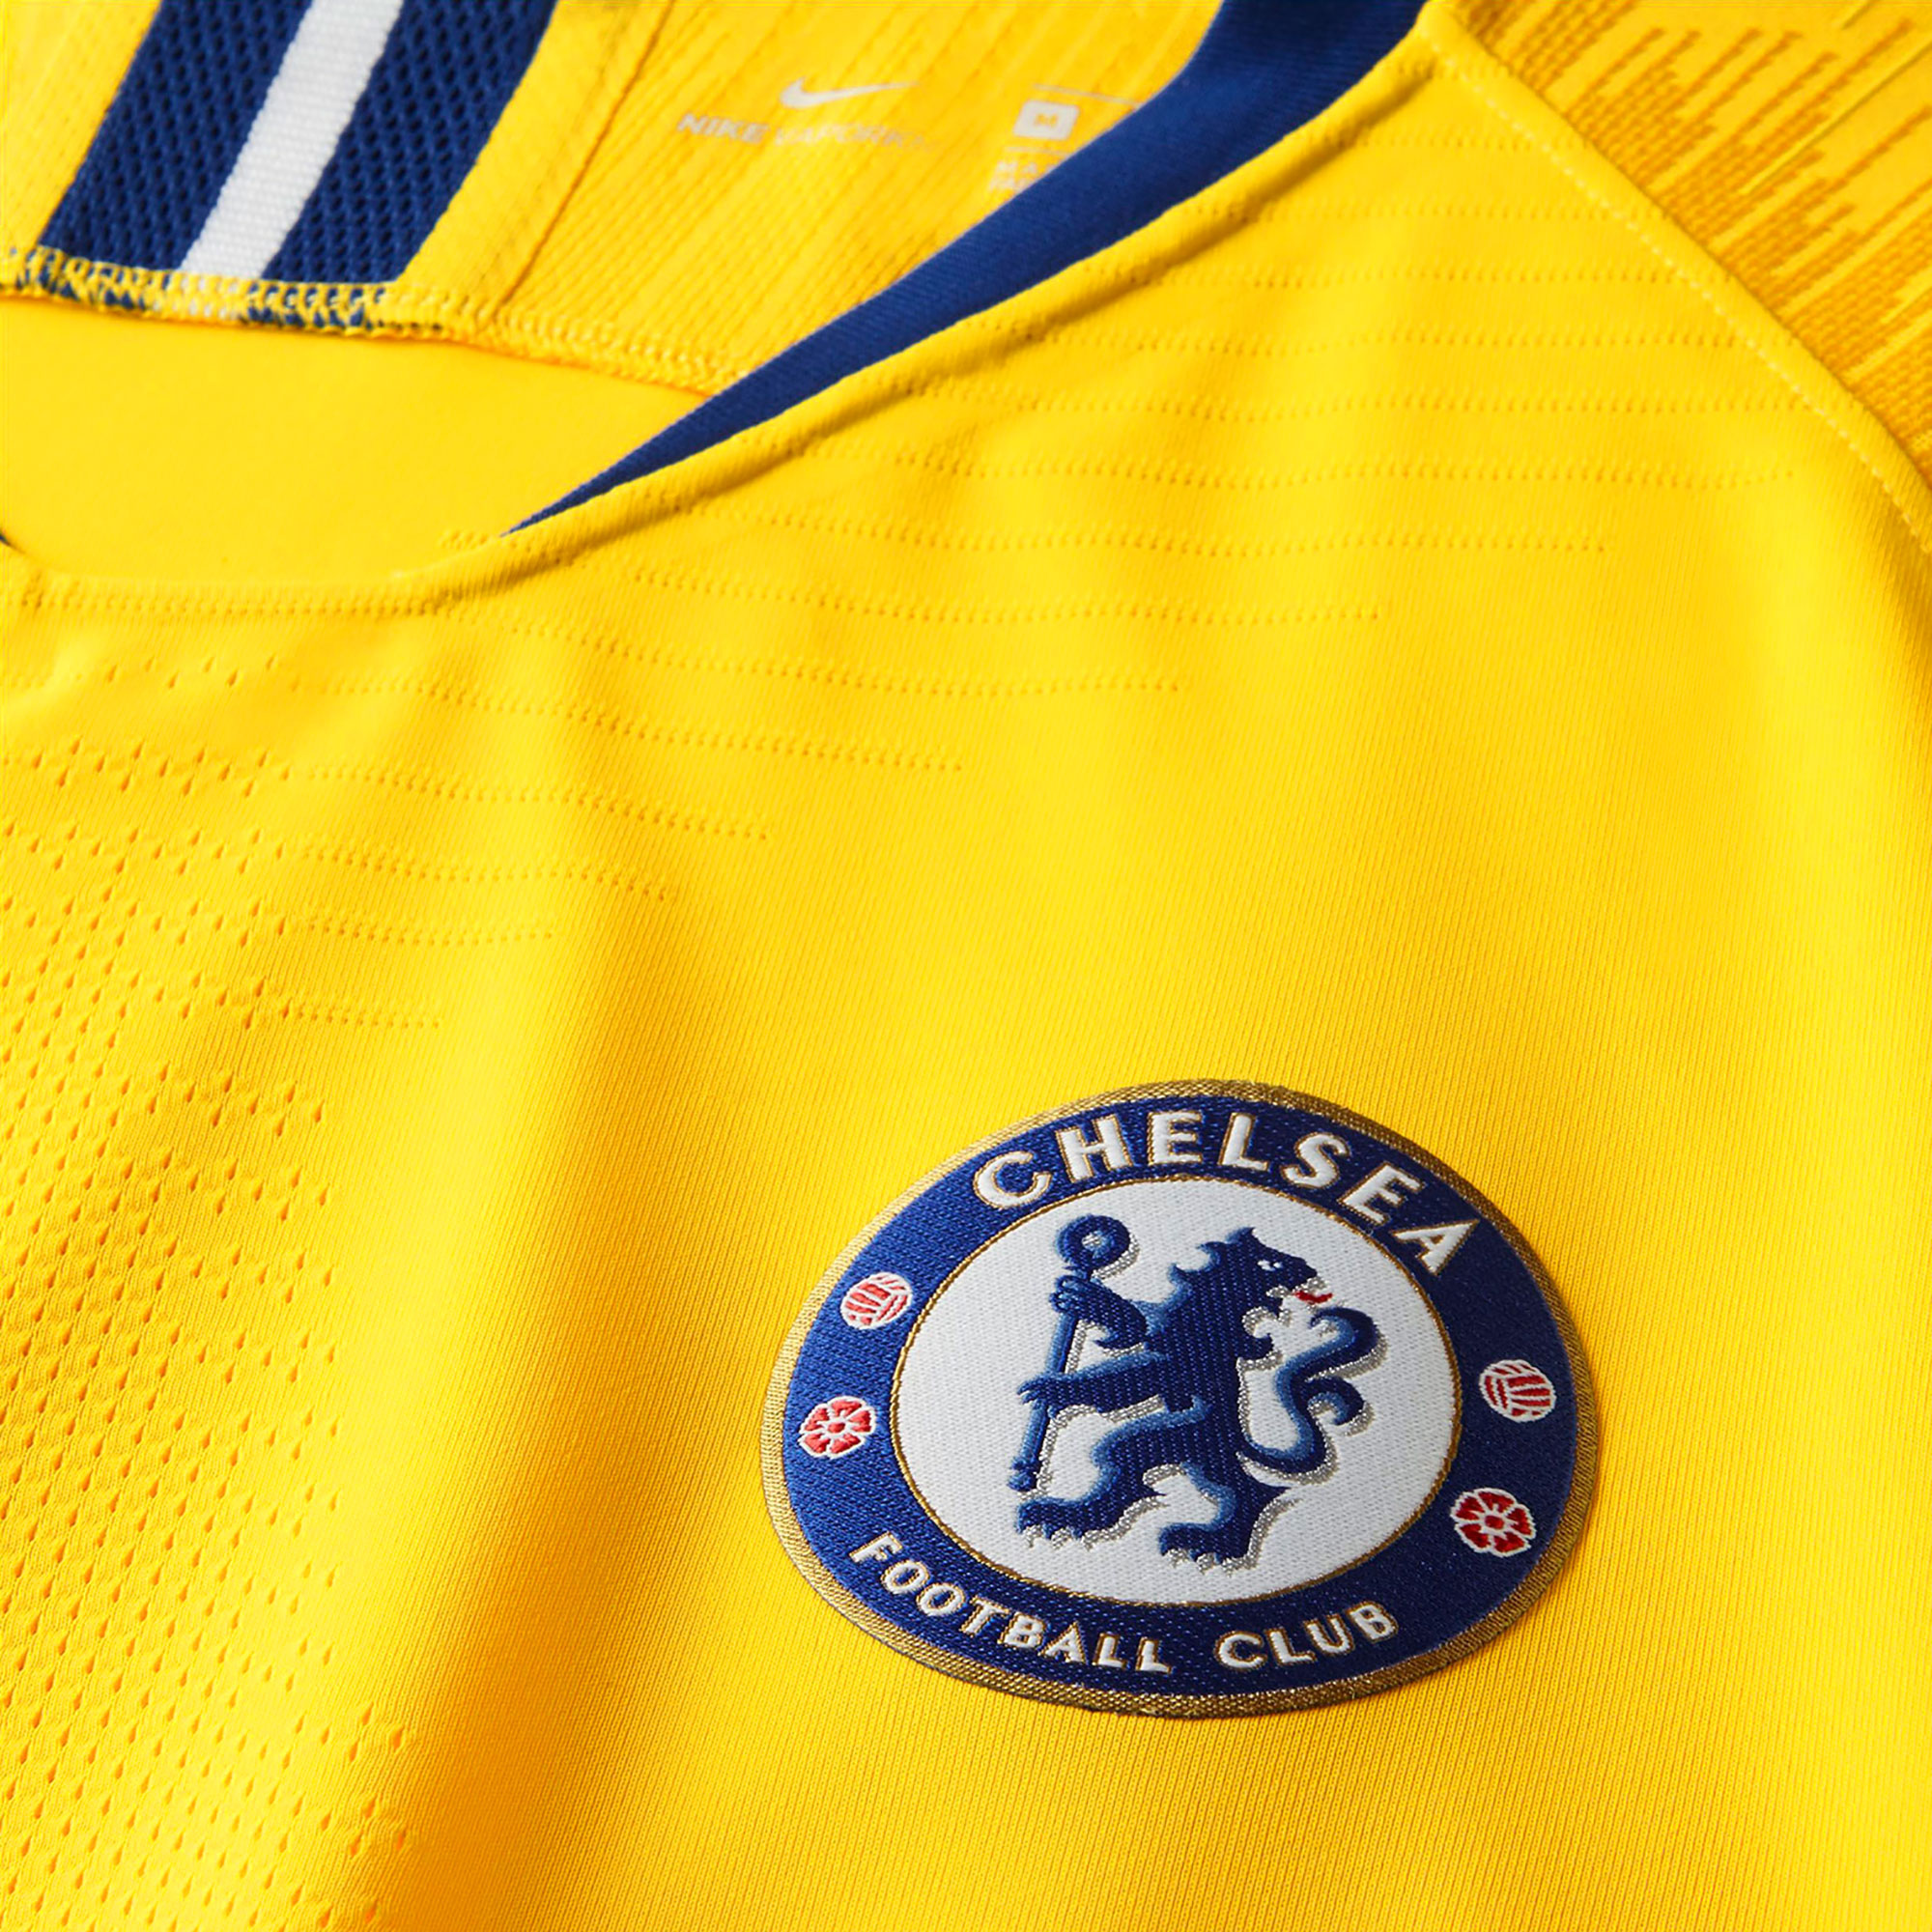 f9020d835 ... Click to enlarge image chelsea 18 19 nike away kit c.jpg ...